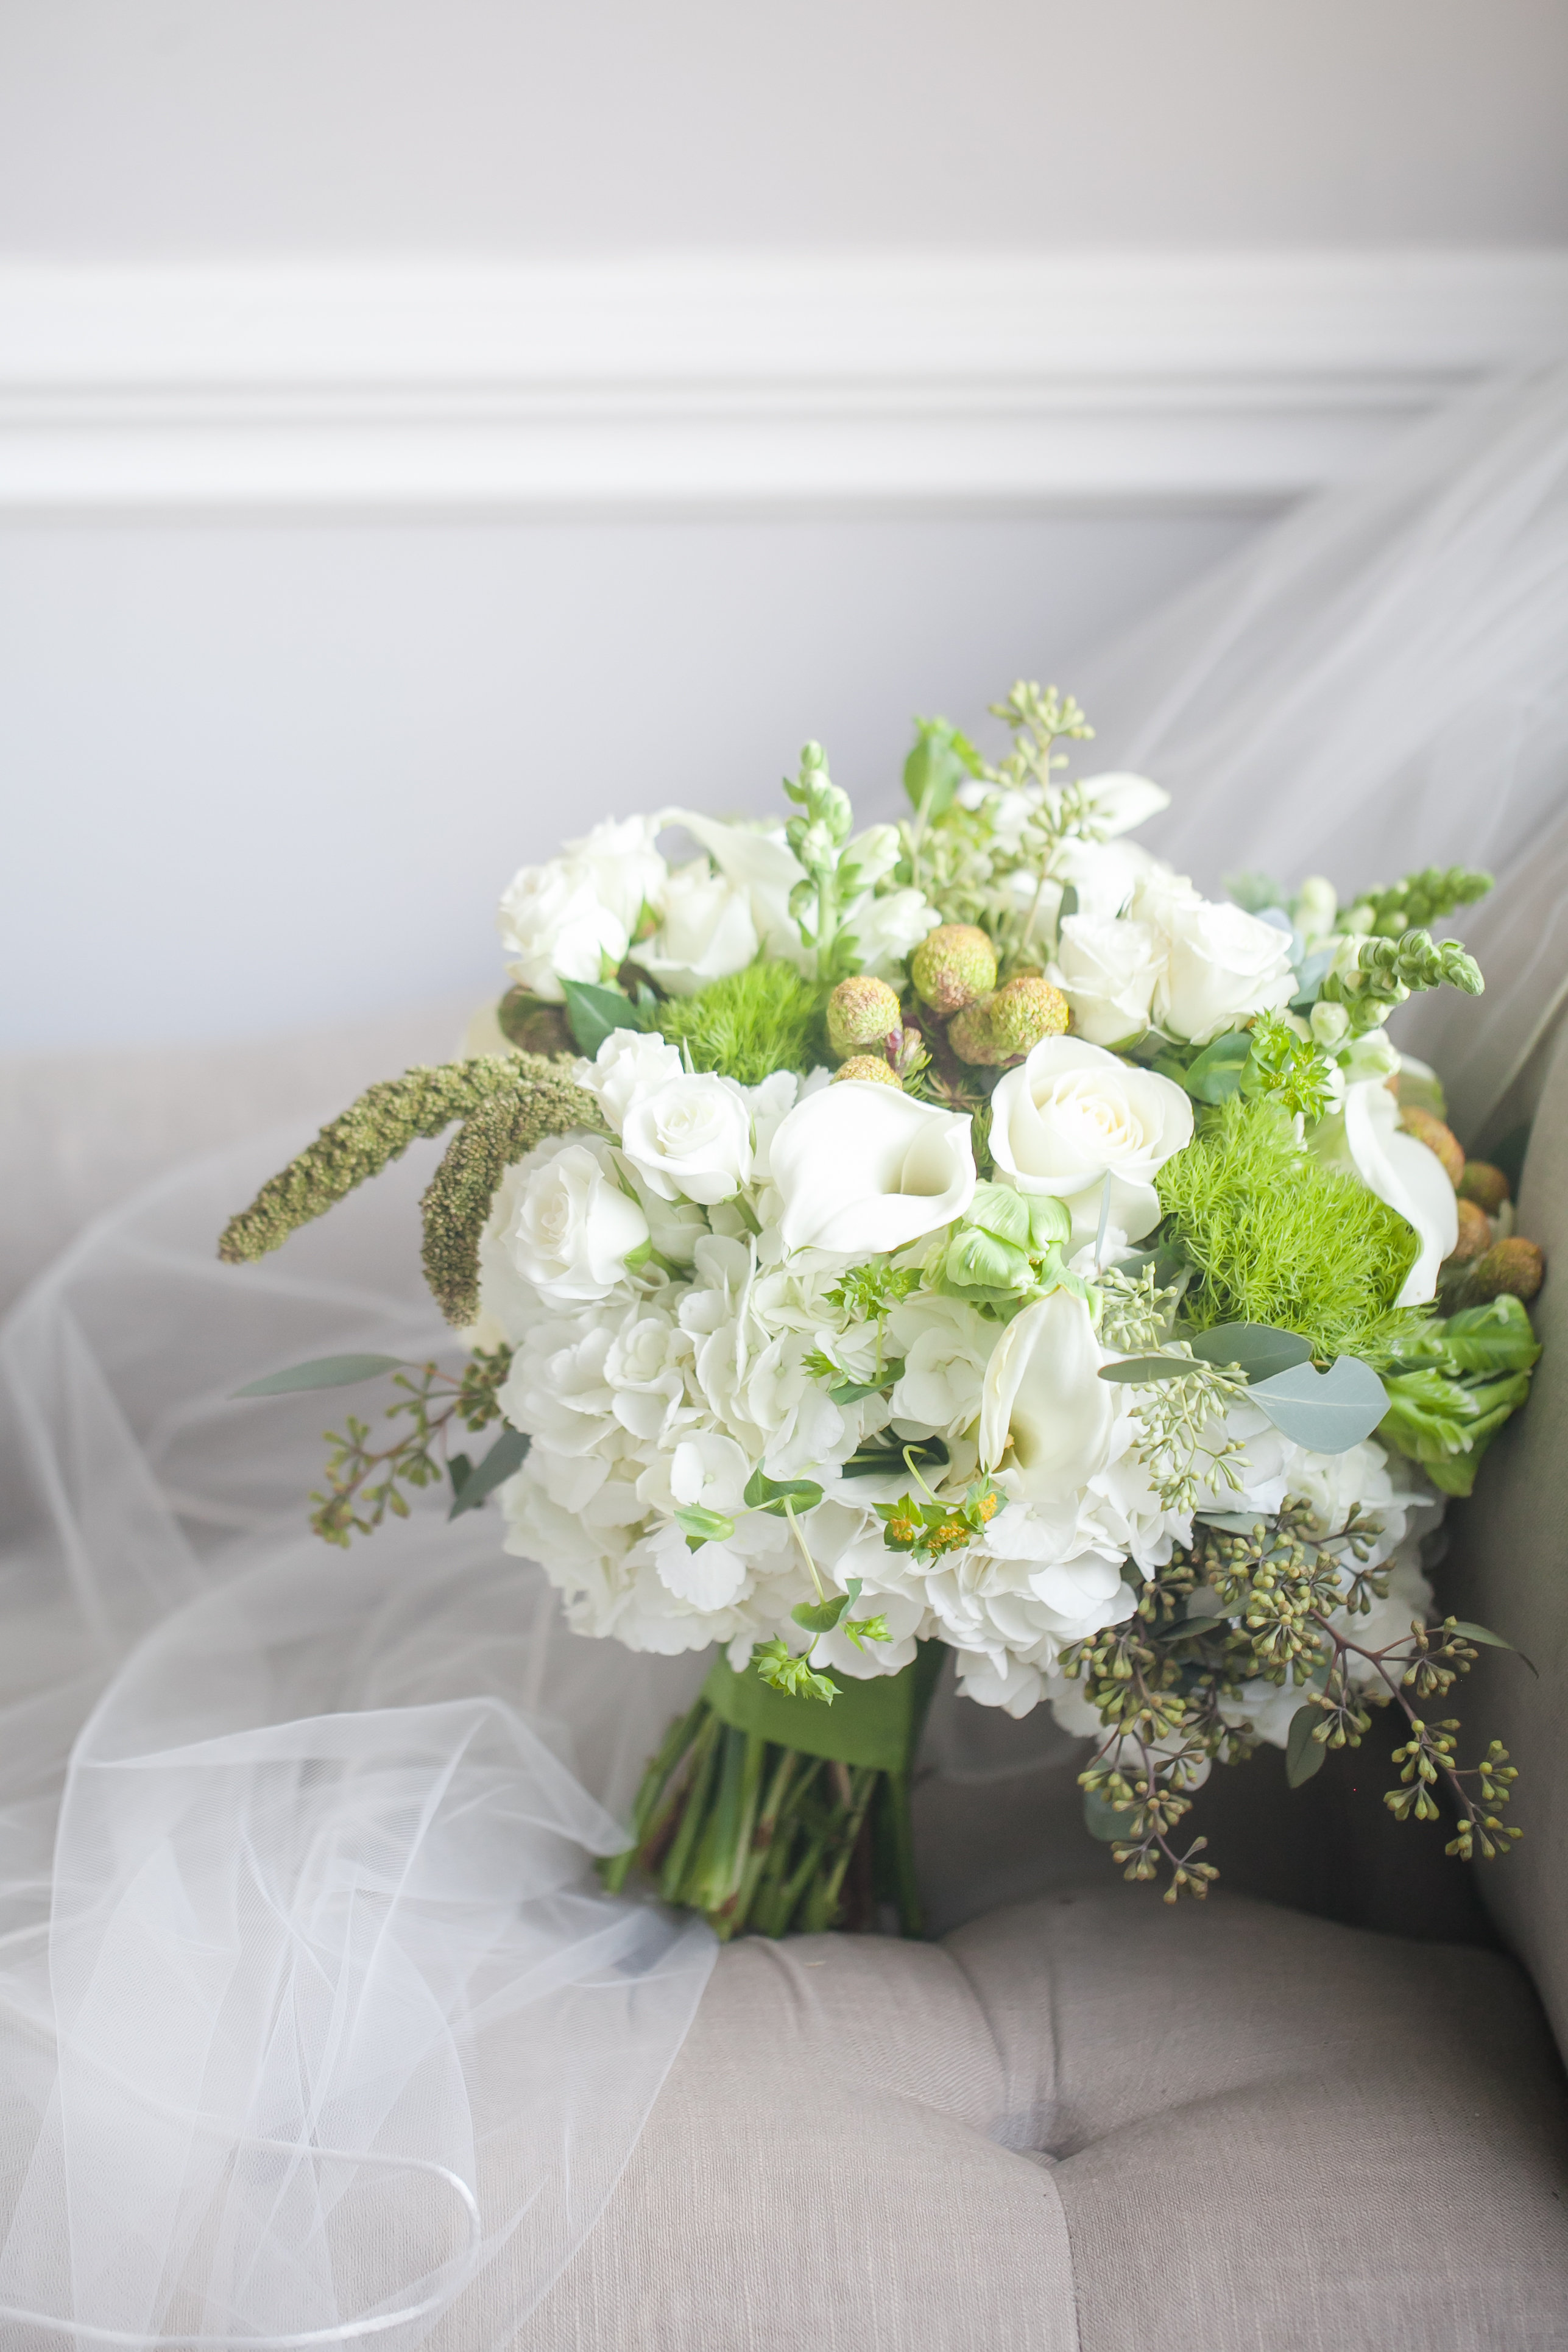 White bridal bouquet accented with pops of green for Separk Mansion wedding designed by Chelish Moore